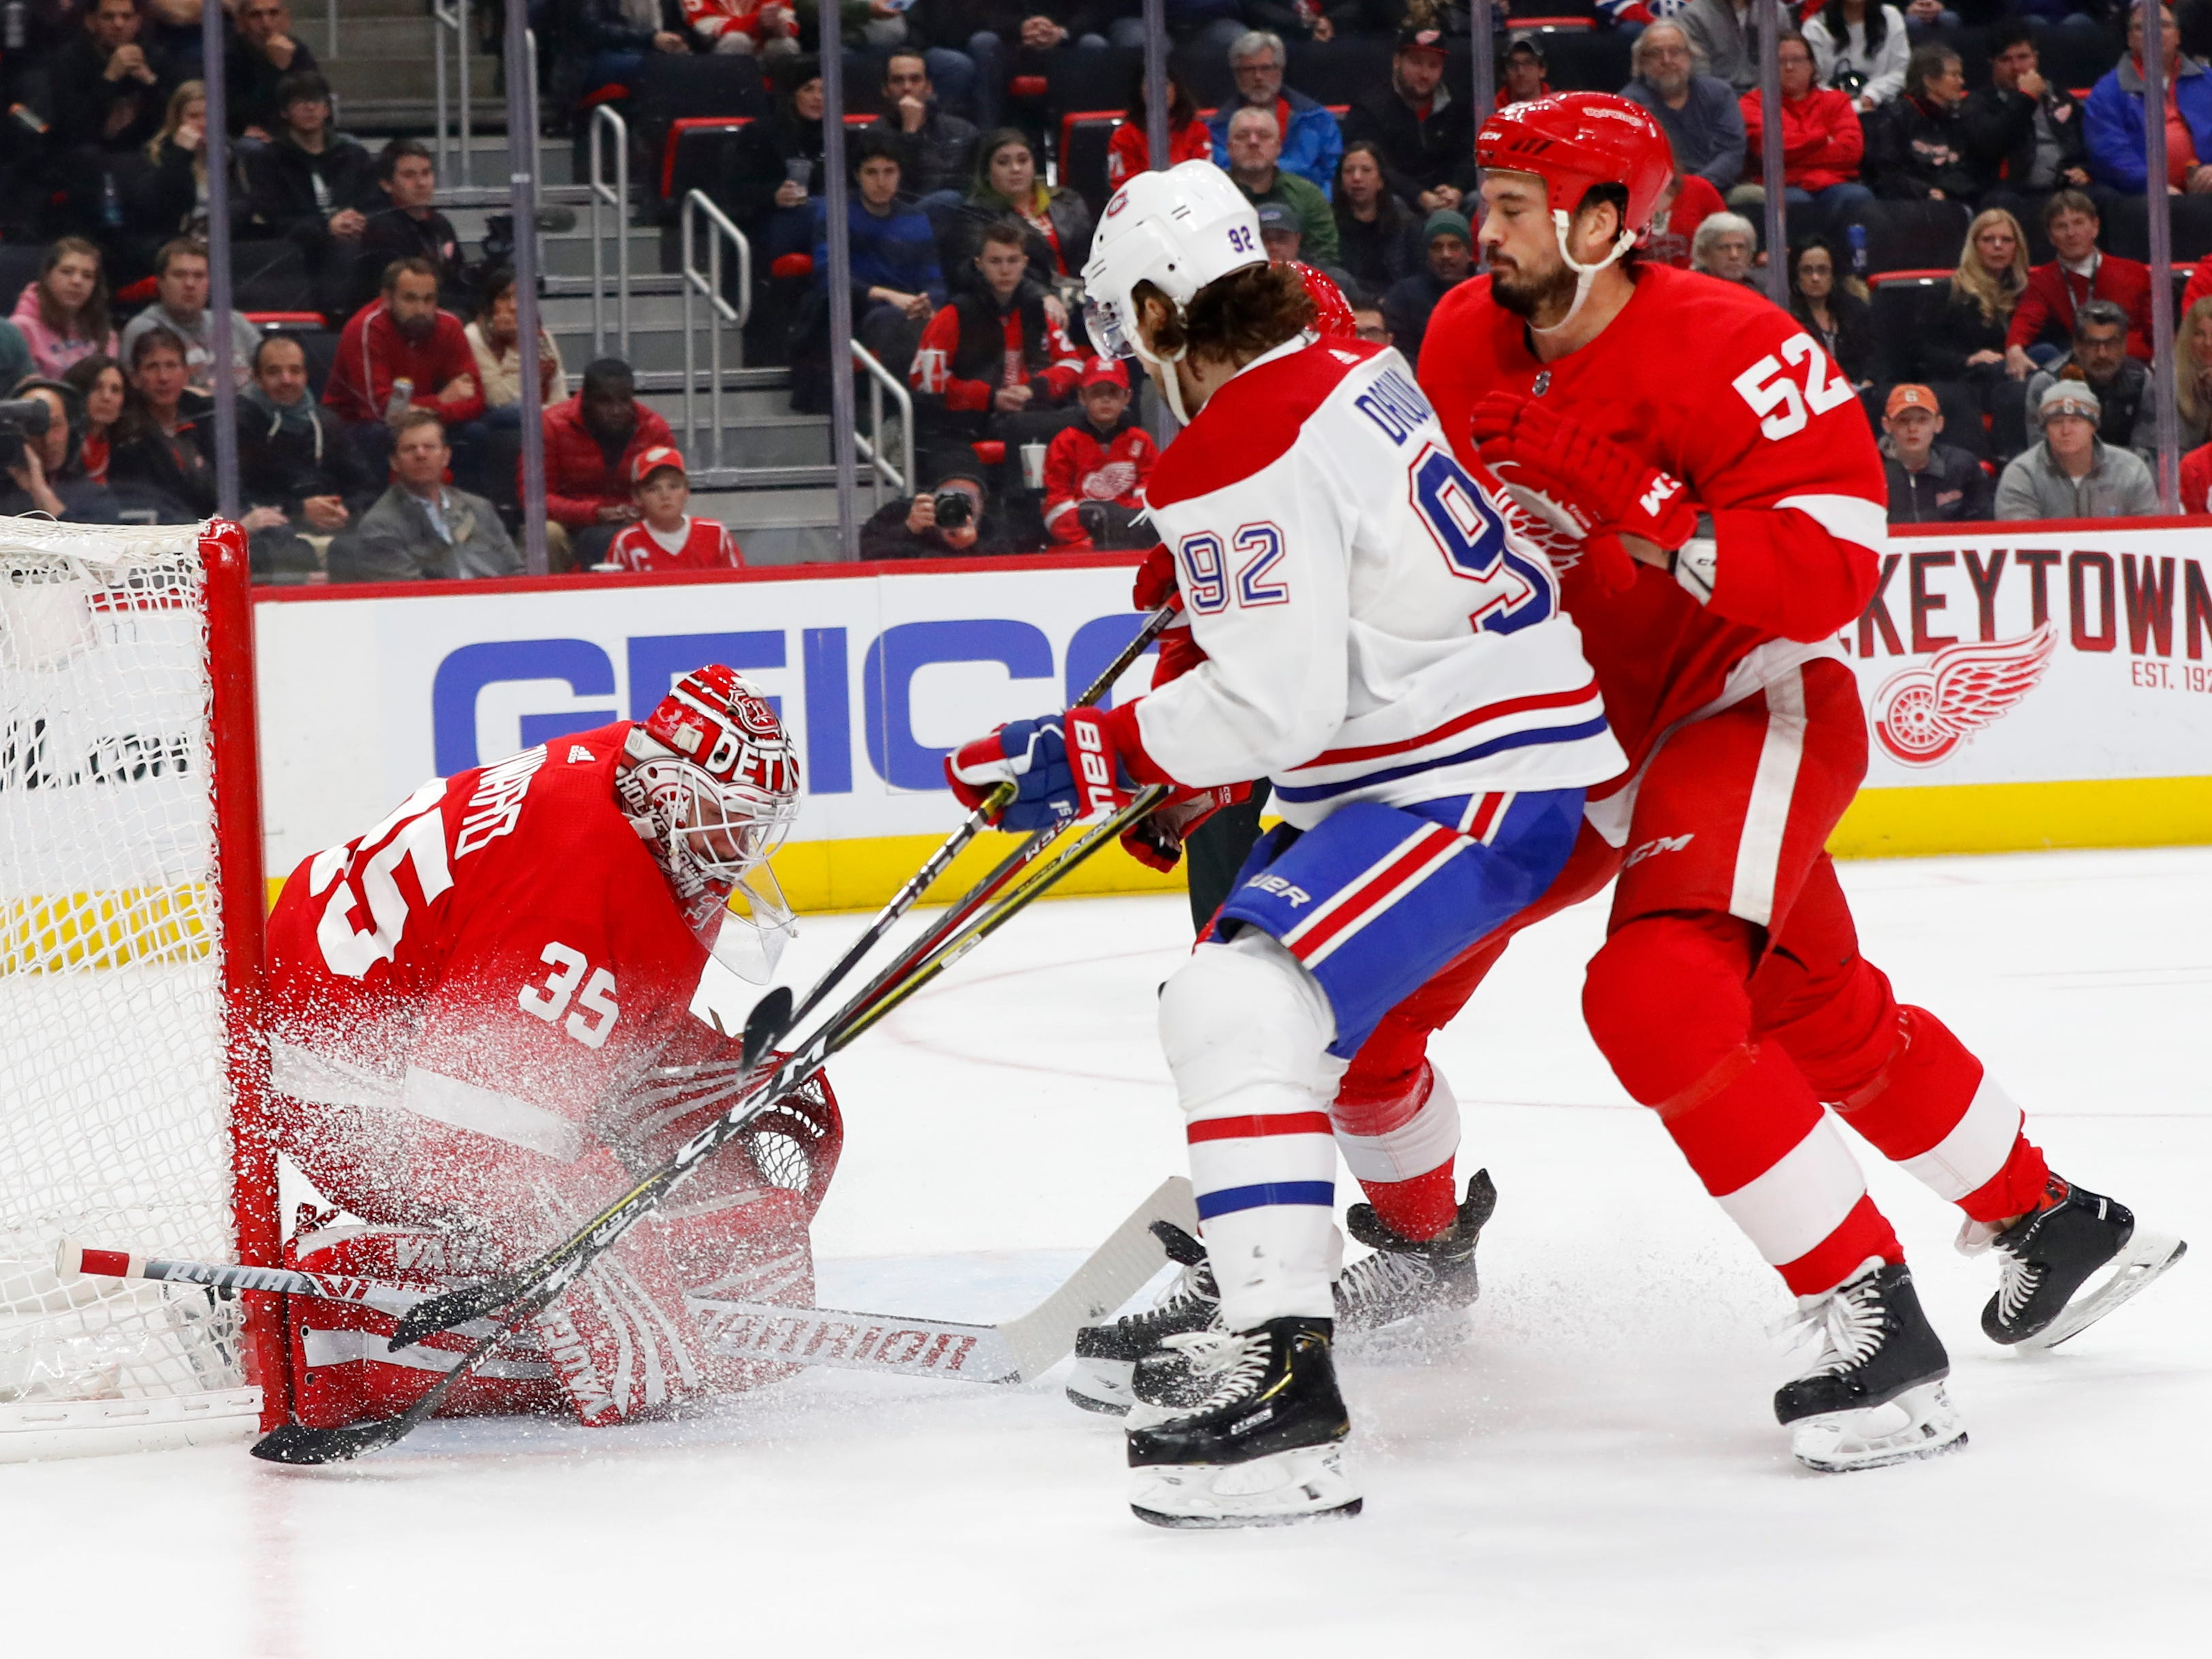 Detroit Red Wings goaltender Jimmy Howard (35) stops a Montreal Canadiens left wing Jonathan Drouin (92) shot in the first period.